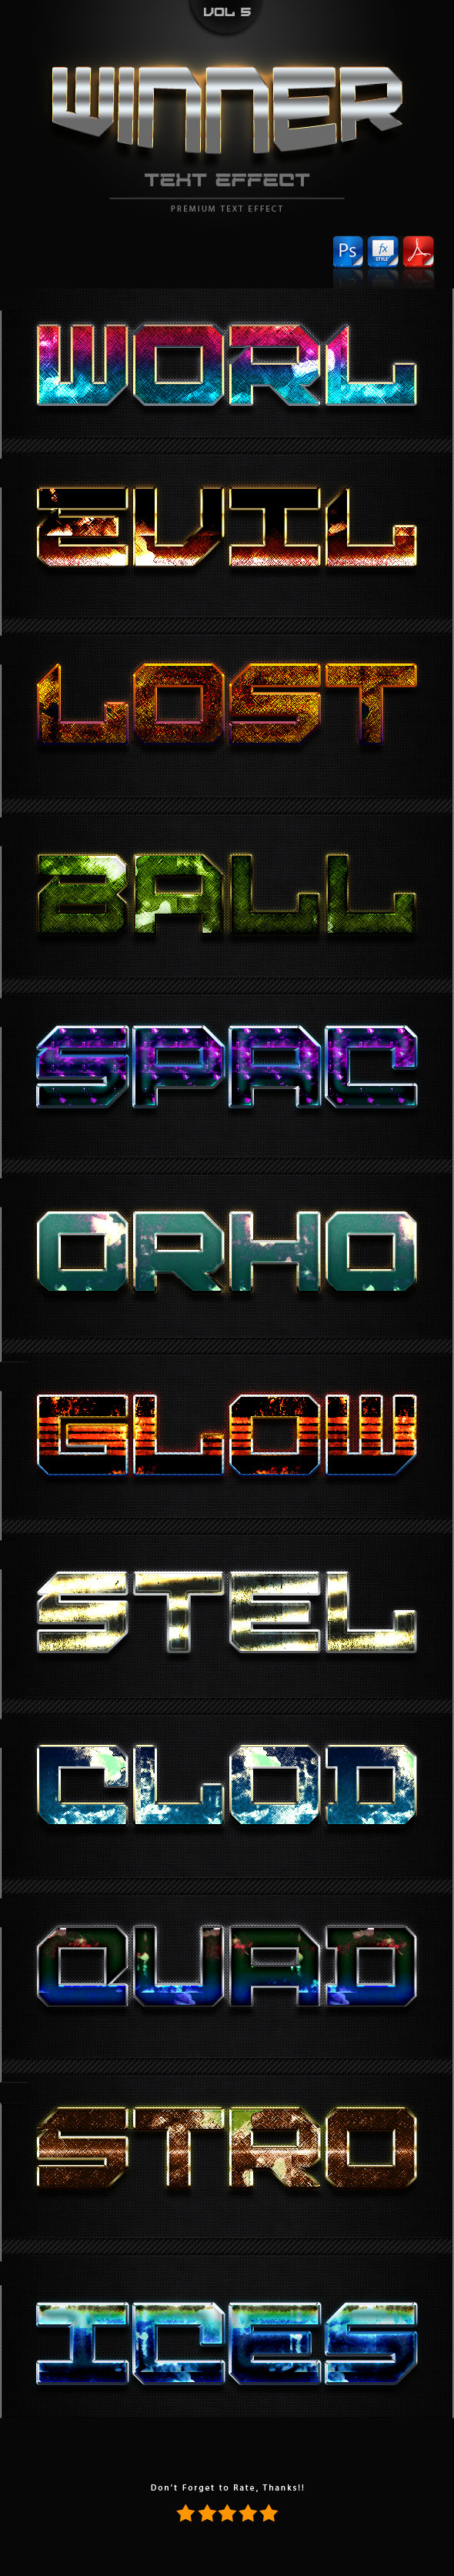 Winner Text Effect Styles Vol 5 - Text Effects Styles